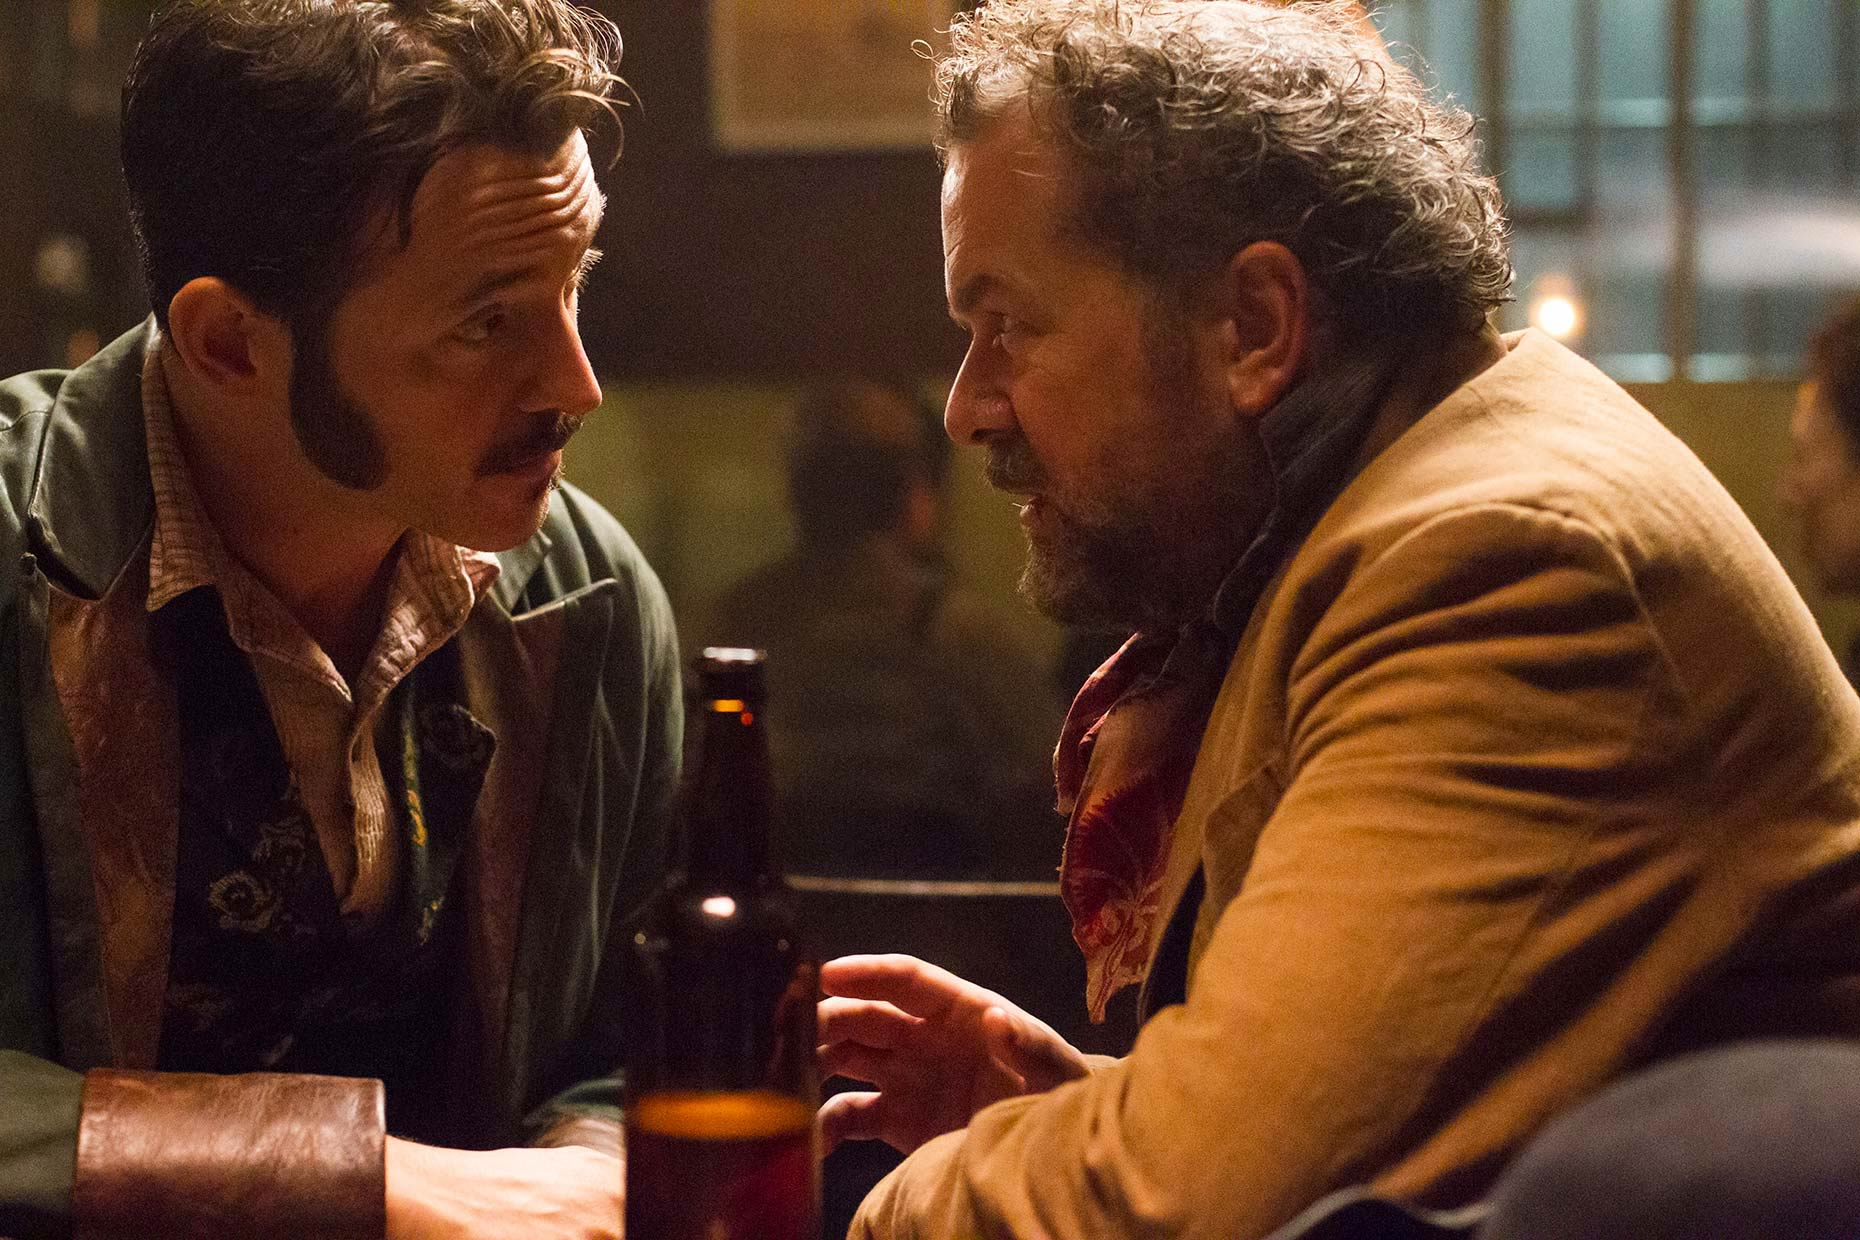 RIPPER STREET 2 : Adam Rothenberg and David Costabile